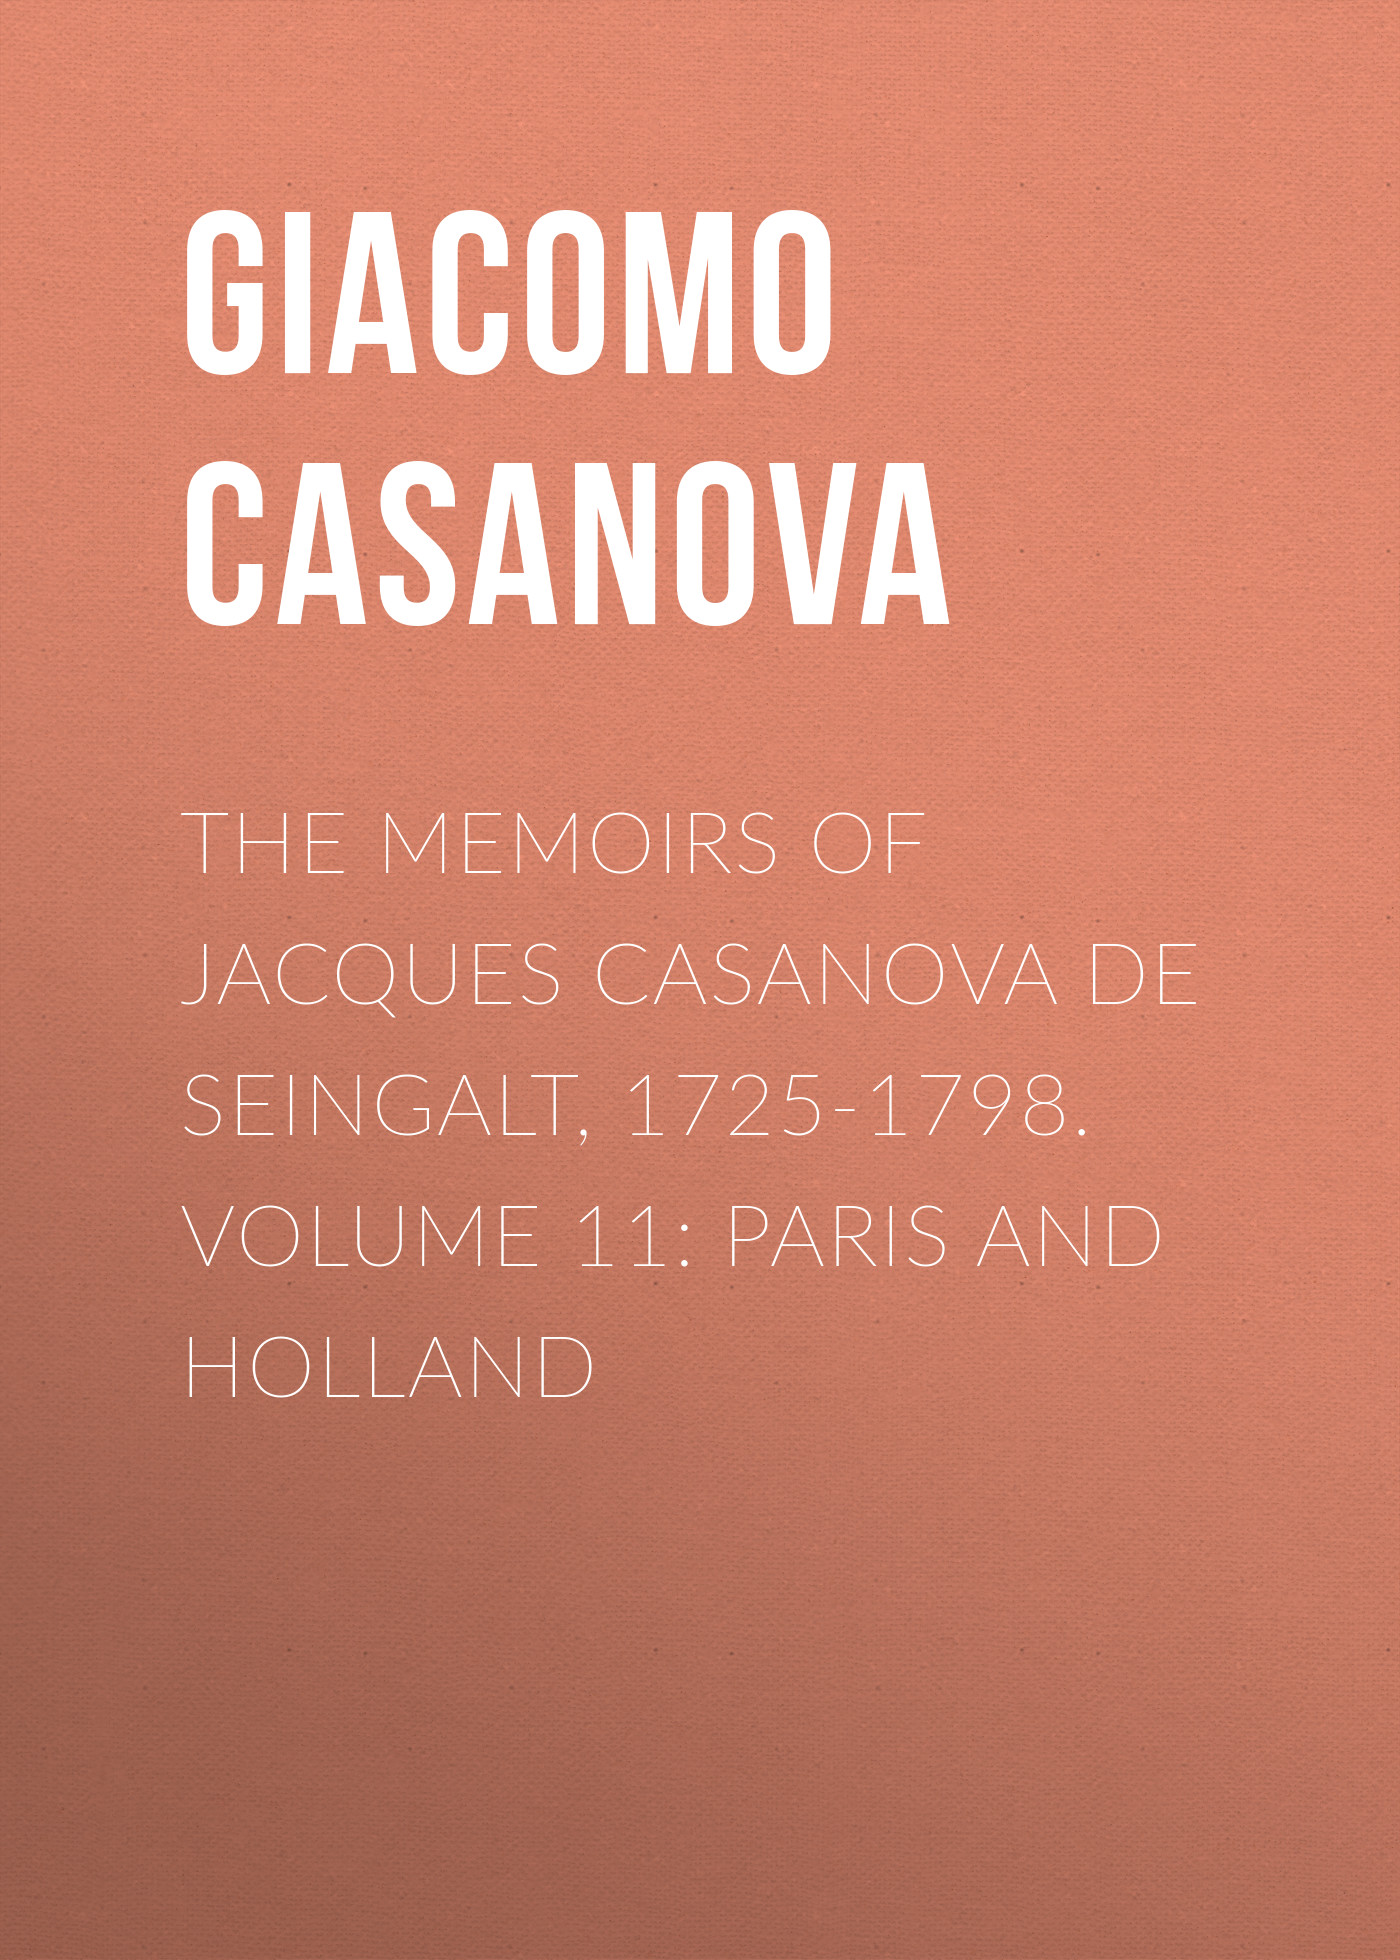 Giacomo Casanova The Memoirs of Jacques Casanova de Seingalt, 1725-1798. Volume 11: Paris and Holland giacomo casanova the memoirs of jacques casanova de seingalt 1725 1798 volume 30 old age and death